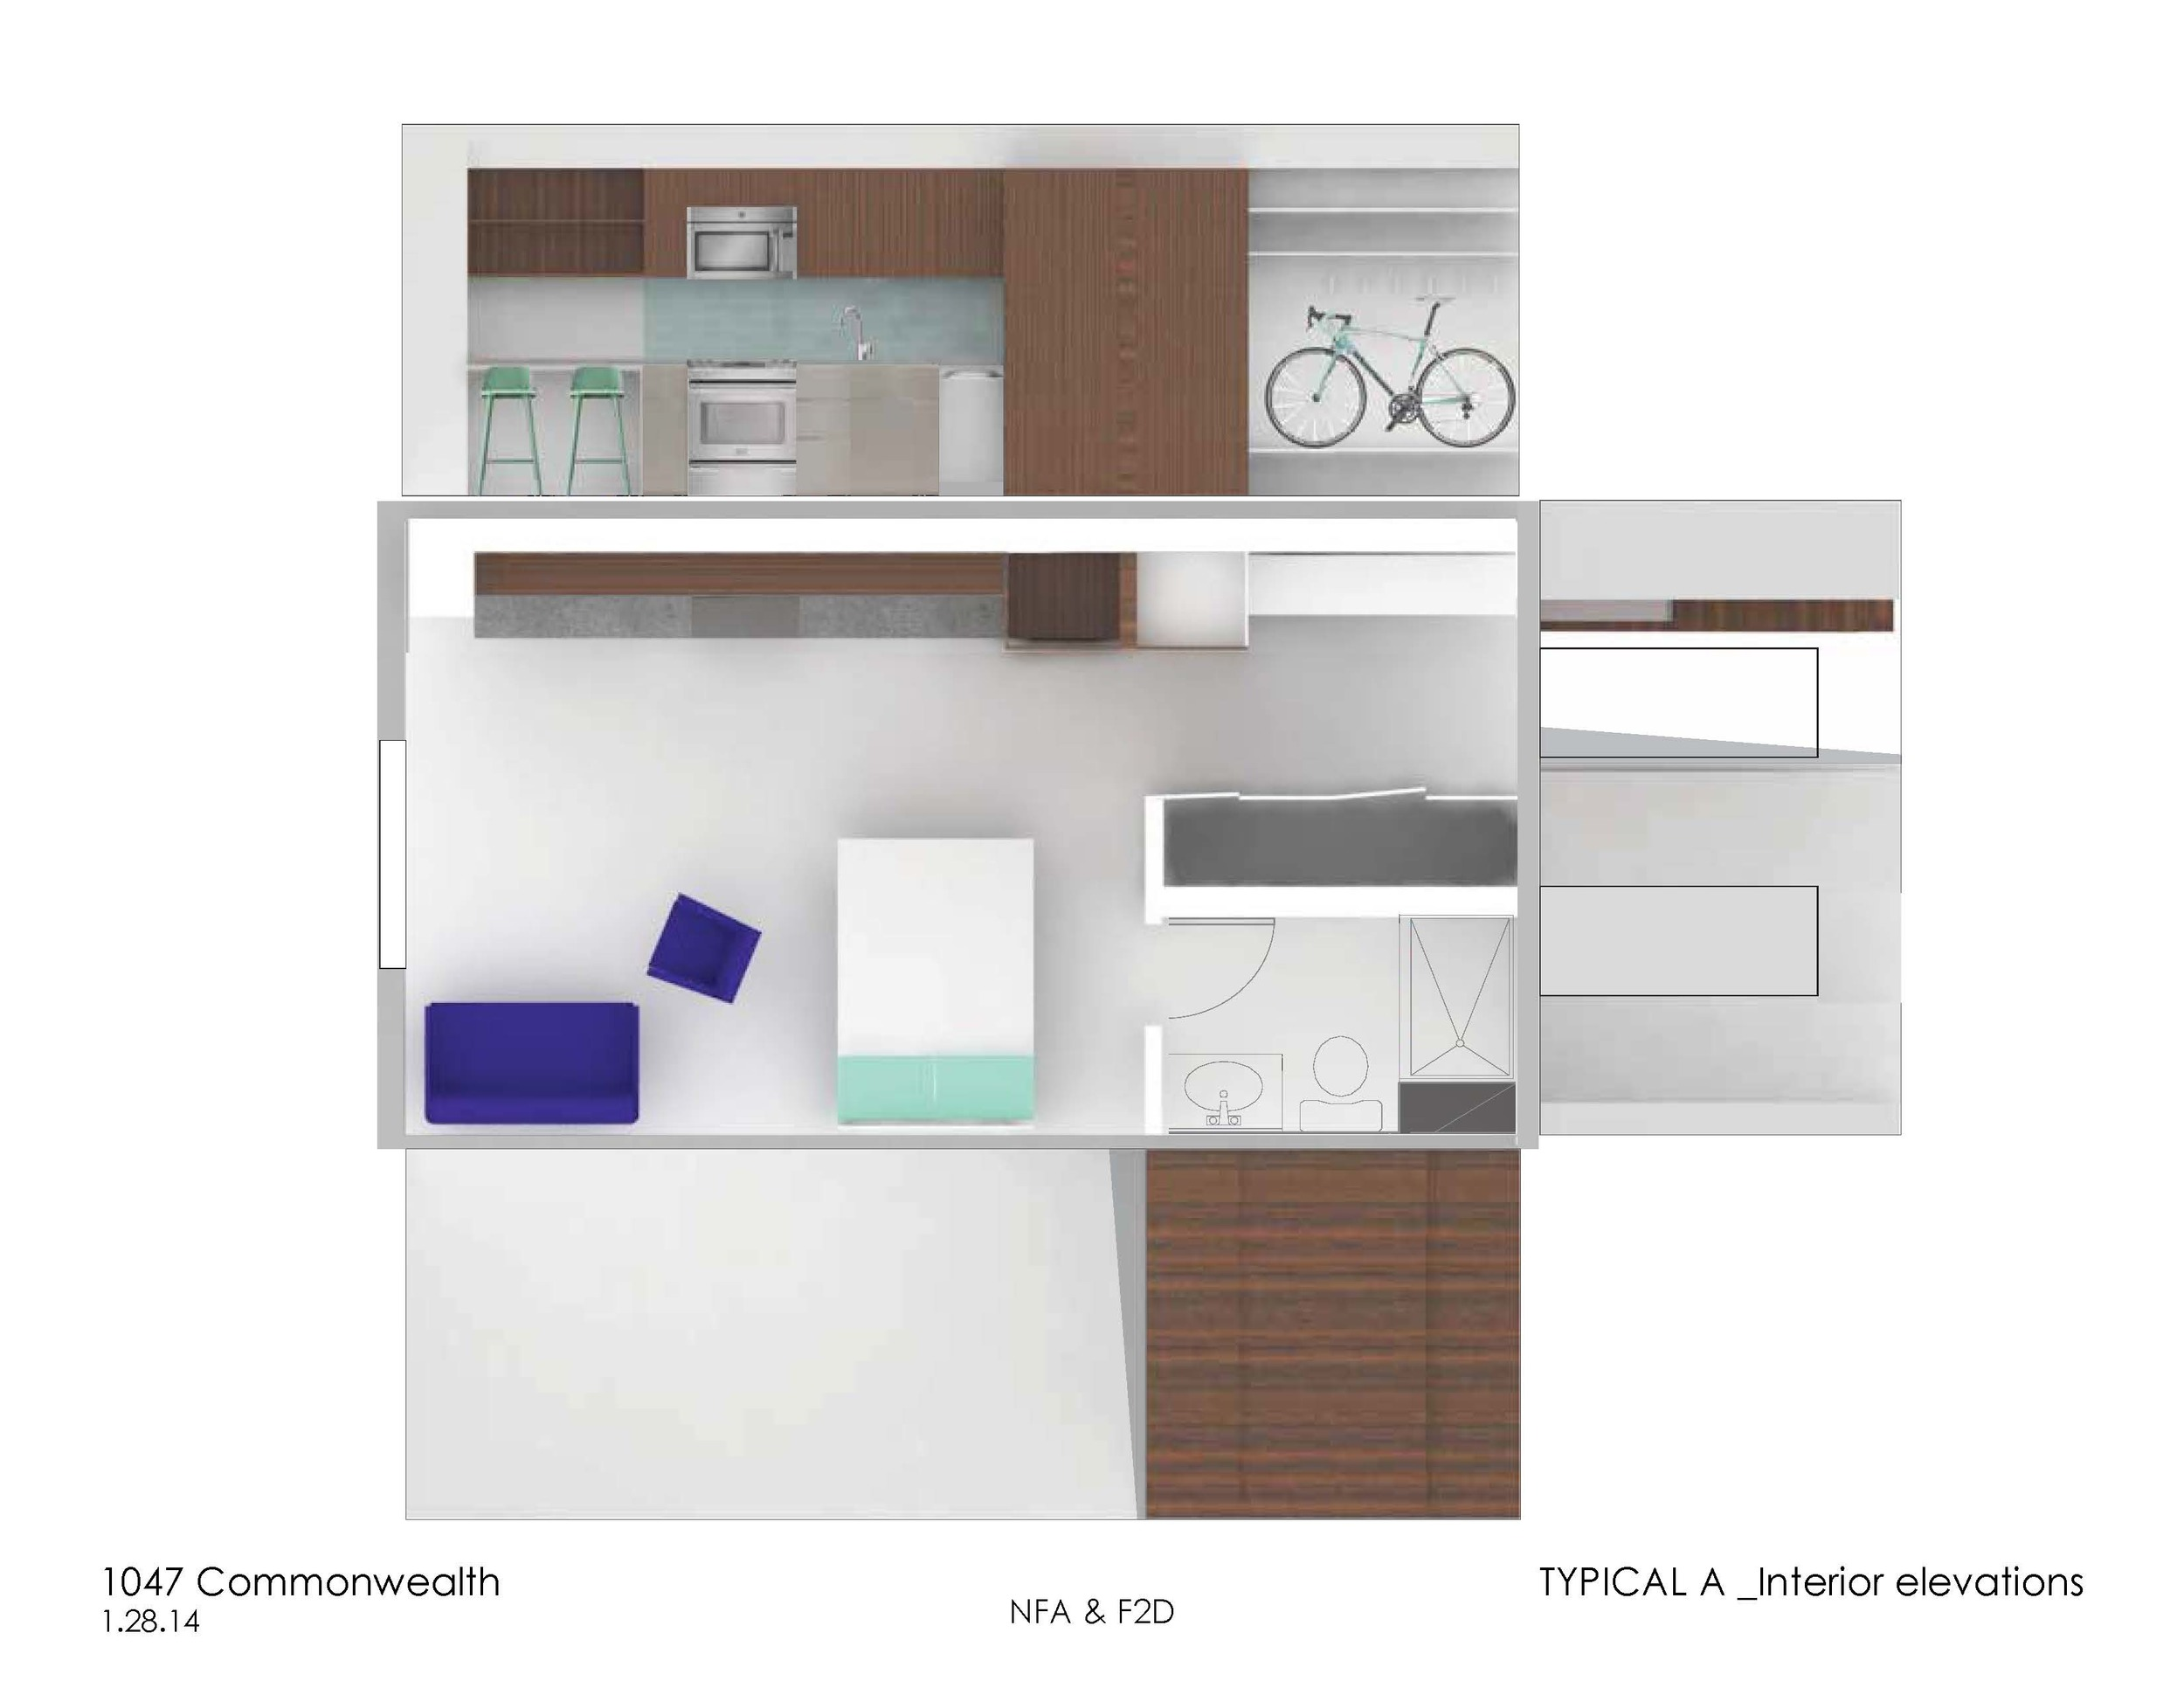 French2D_1047 Commonwealth Ave_Marketing Plans and Construction Update May 2016_Page_10.jpg